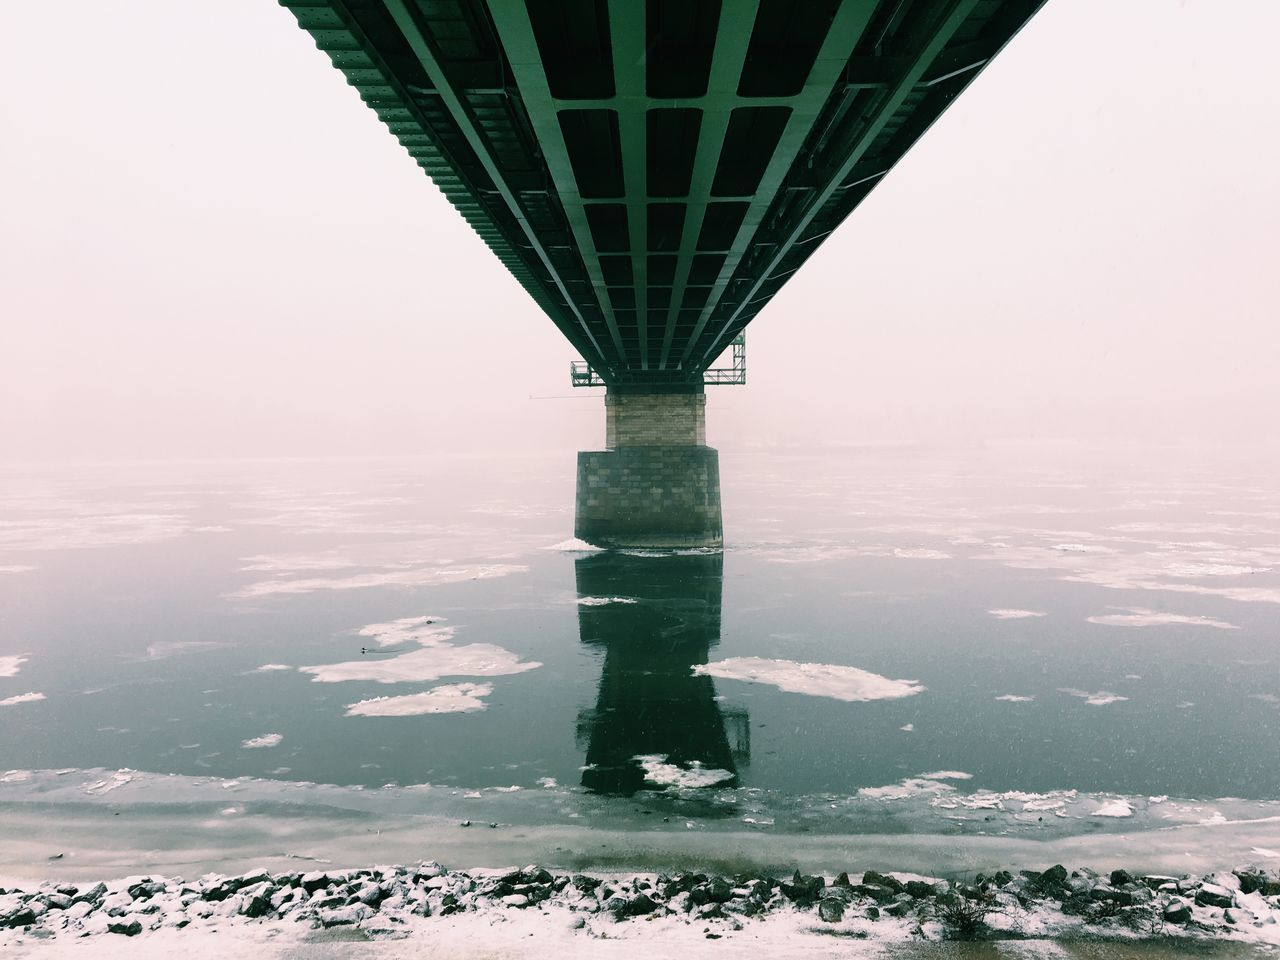 Man Made Object Construction Industry Foggy Day Budapest Perspective Snow ❄ Green Industrial City Life Public Transportation Railway Rail Transportation Bridge - Man Made Structure Bridge River Architecture Sky Outdoors Tranquil Scene Beauty In Nature Cold Temperature Snow Winter Nature Adapted To The City EyeEmNewHere